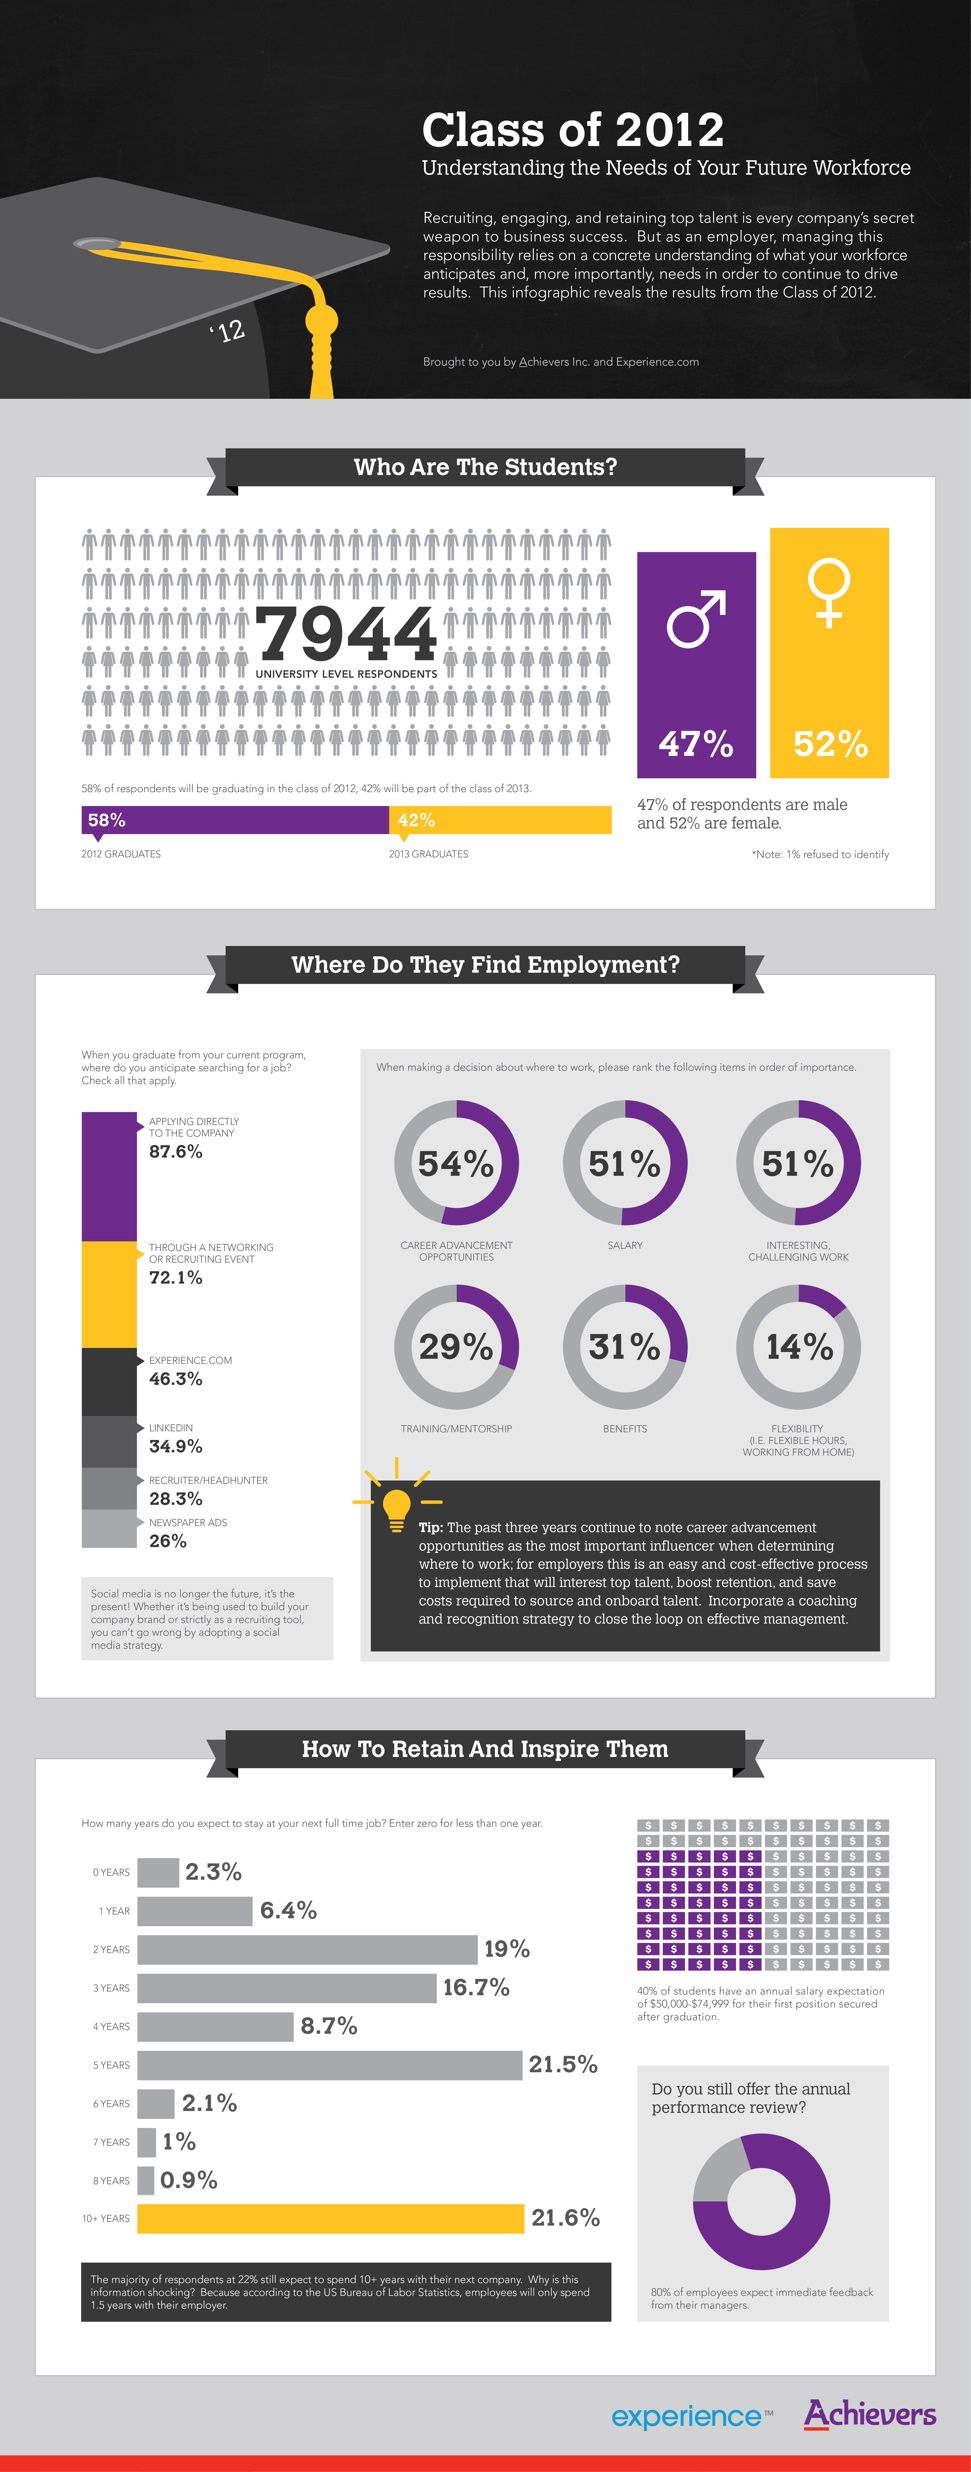 Students More Likely To Apply Directly To Companies Than Via